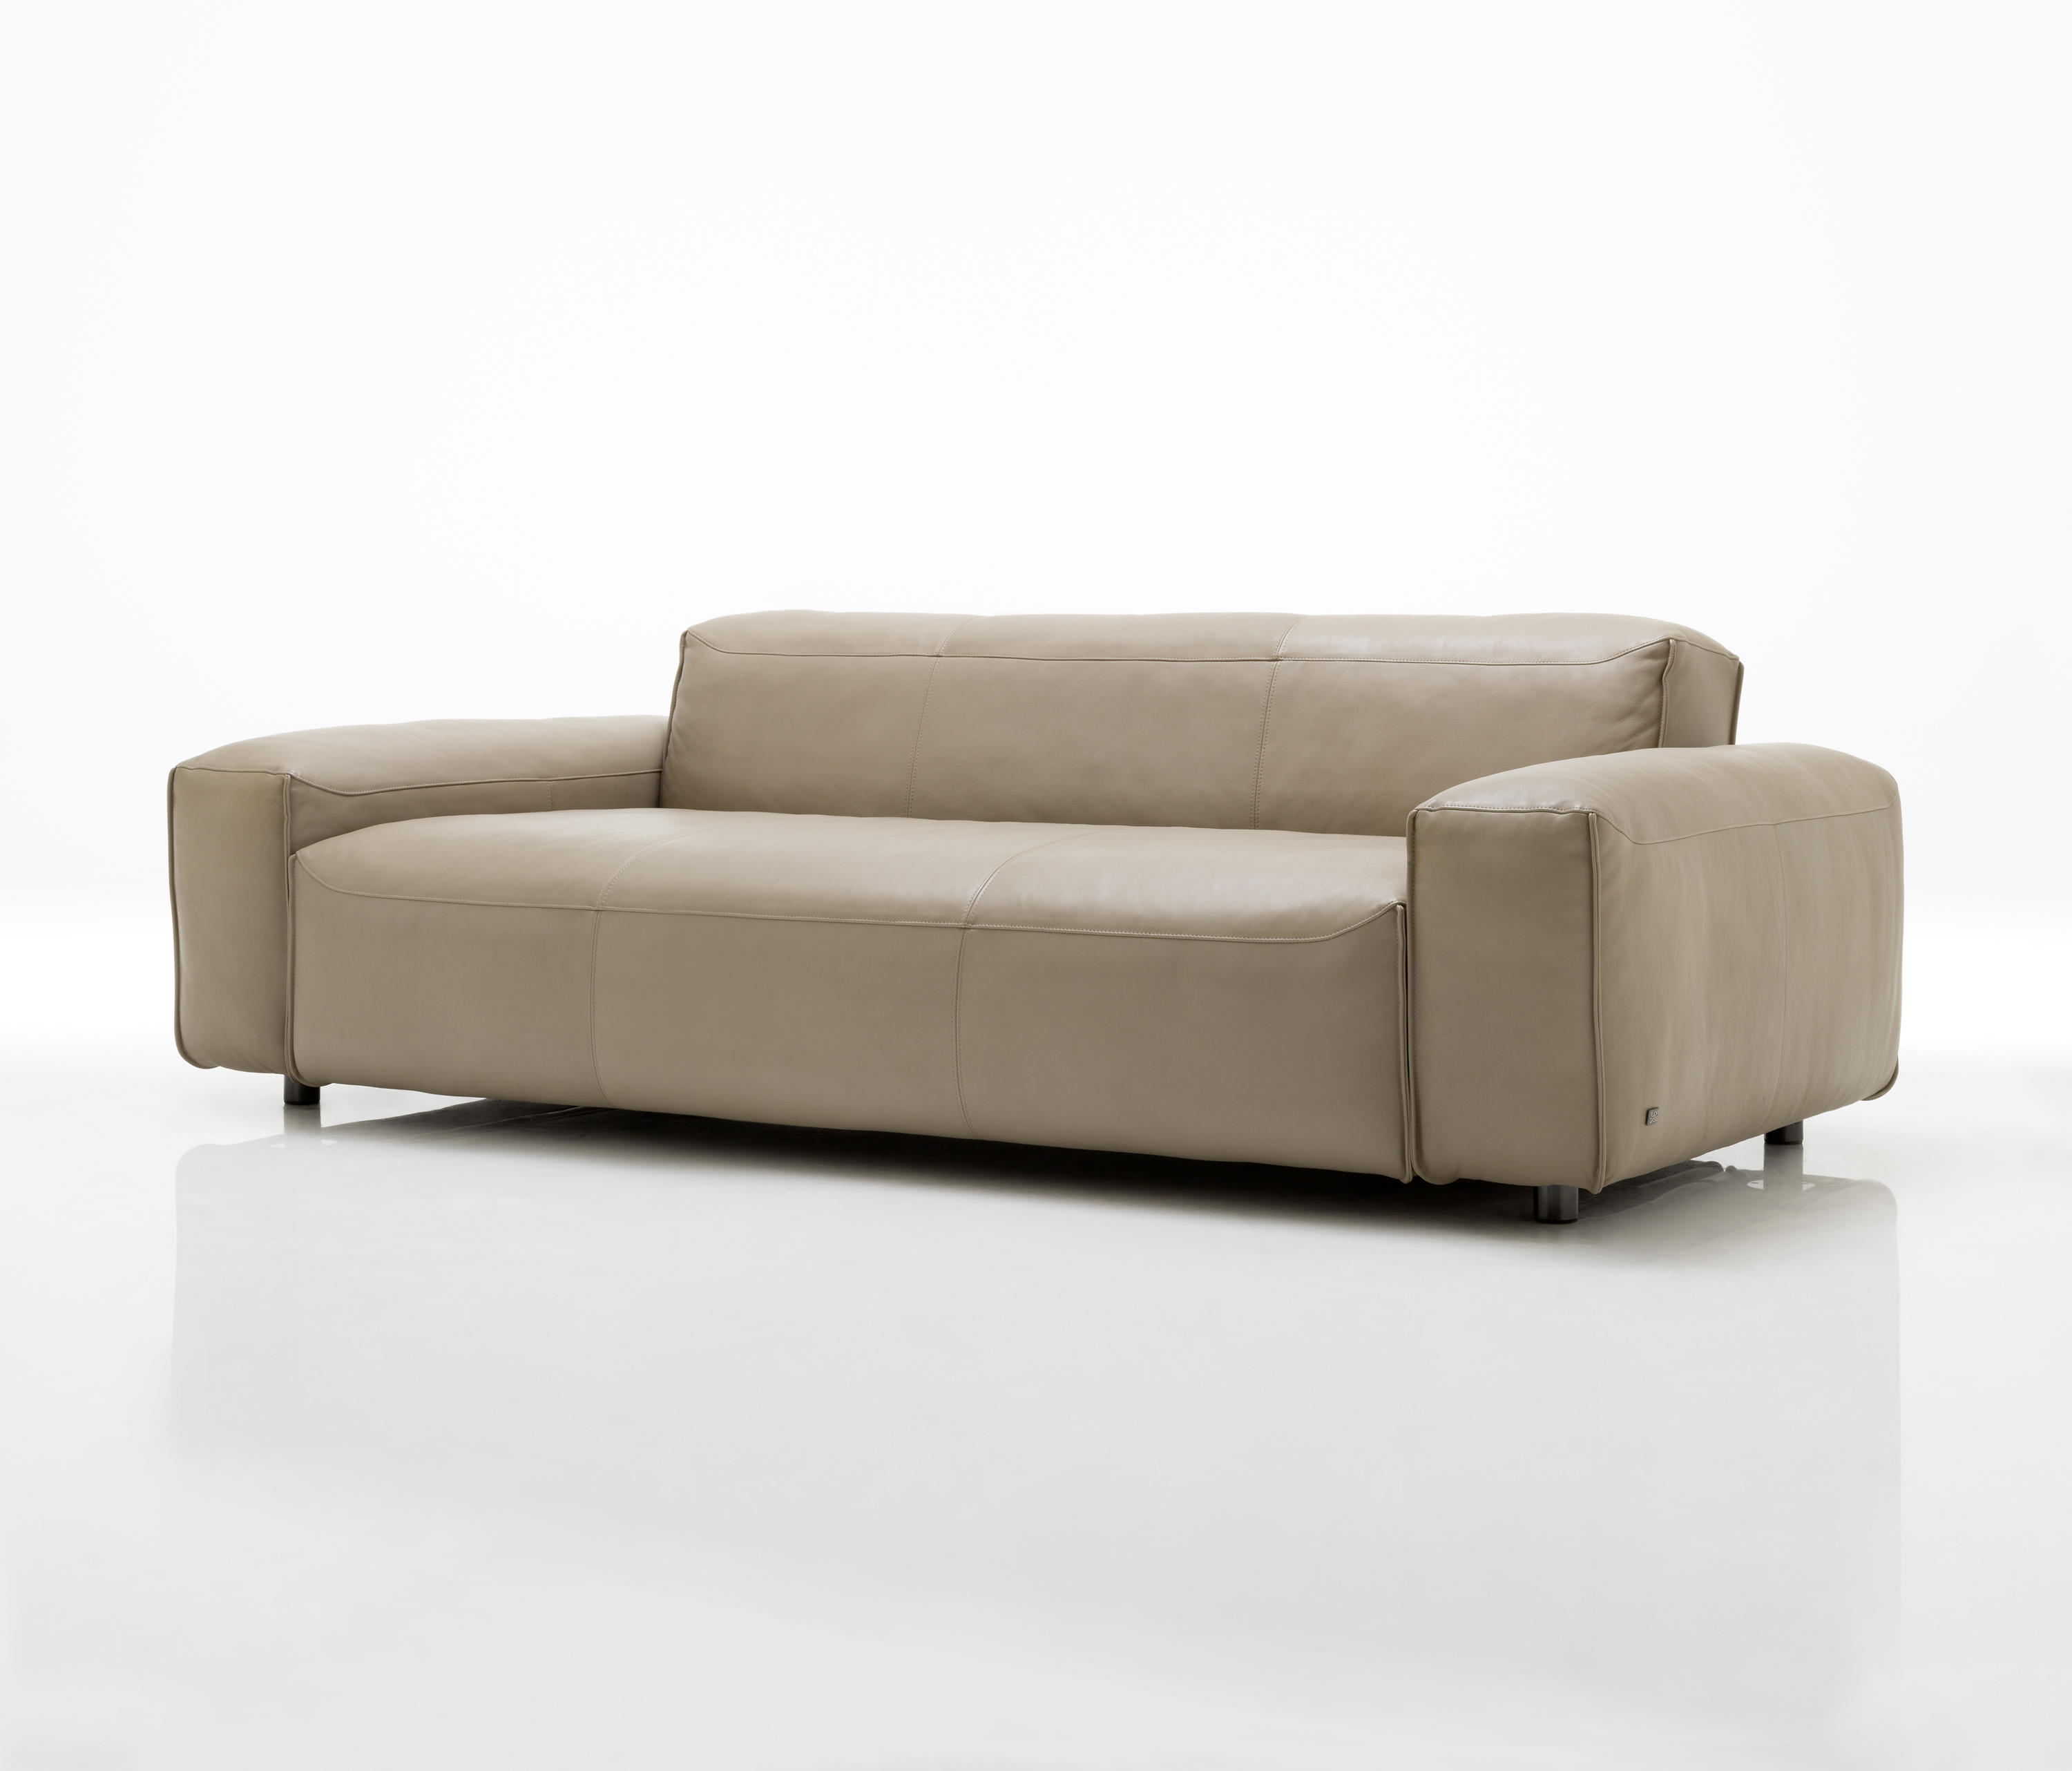 Rolf benz mio loungesofas von rolf benz architonic for Rolf benz nagold